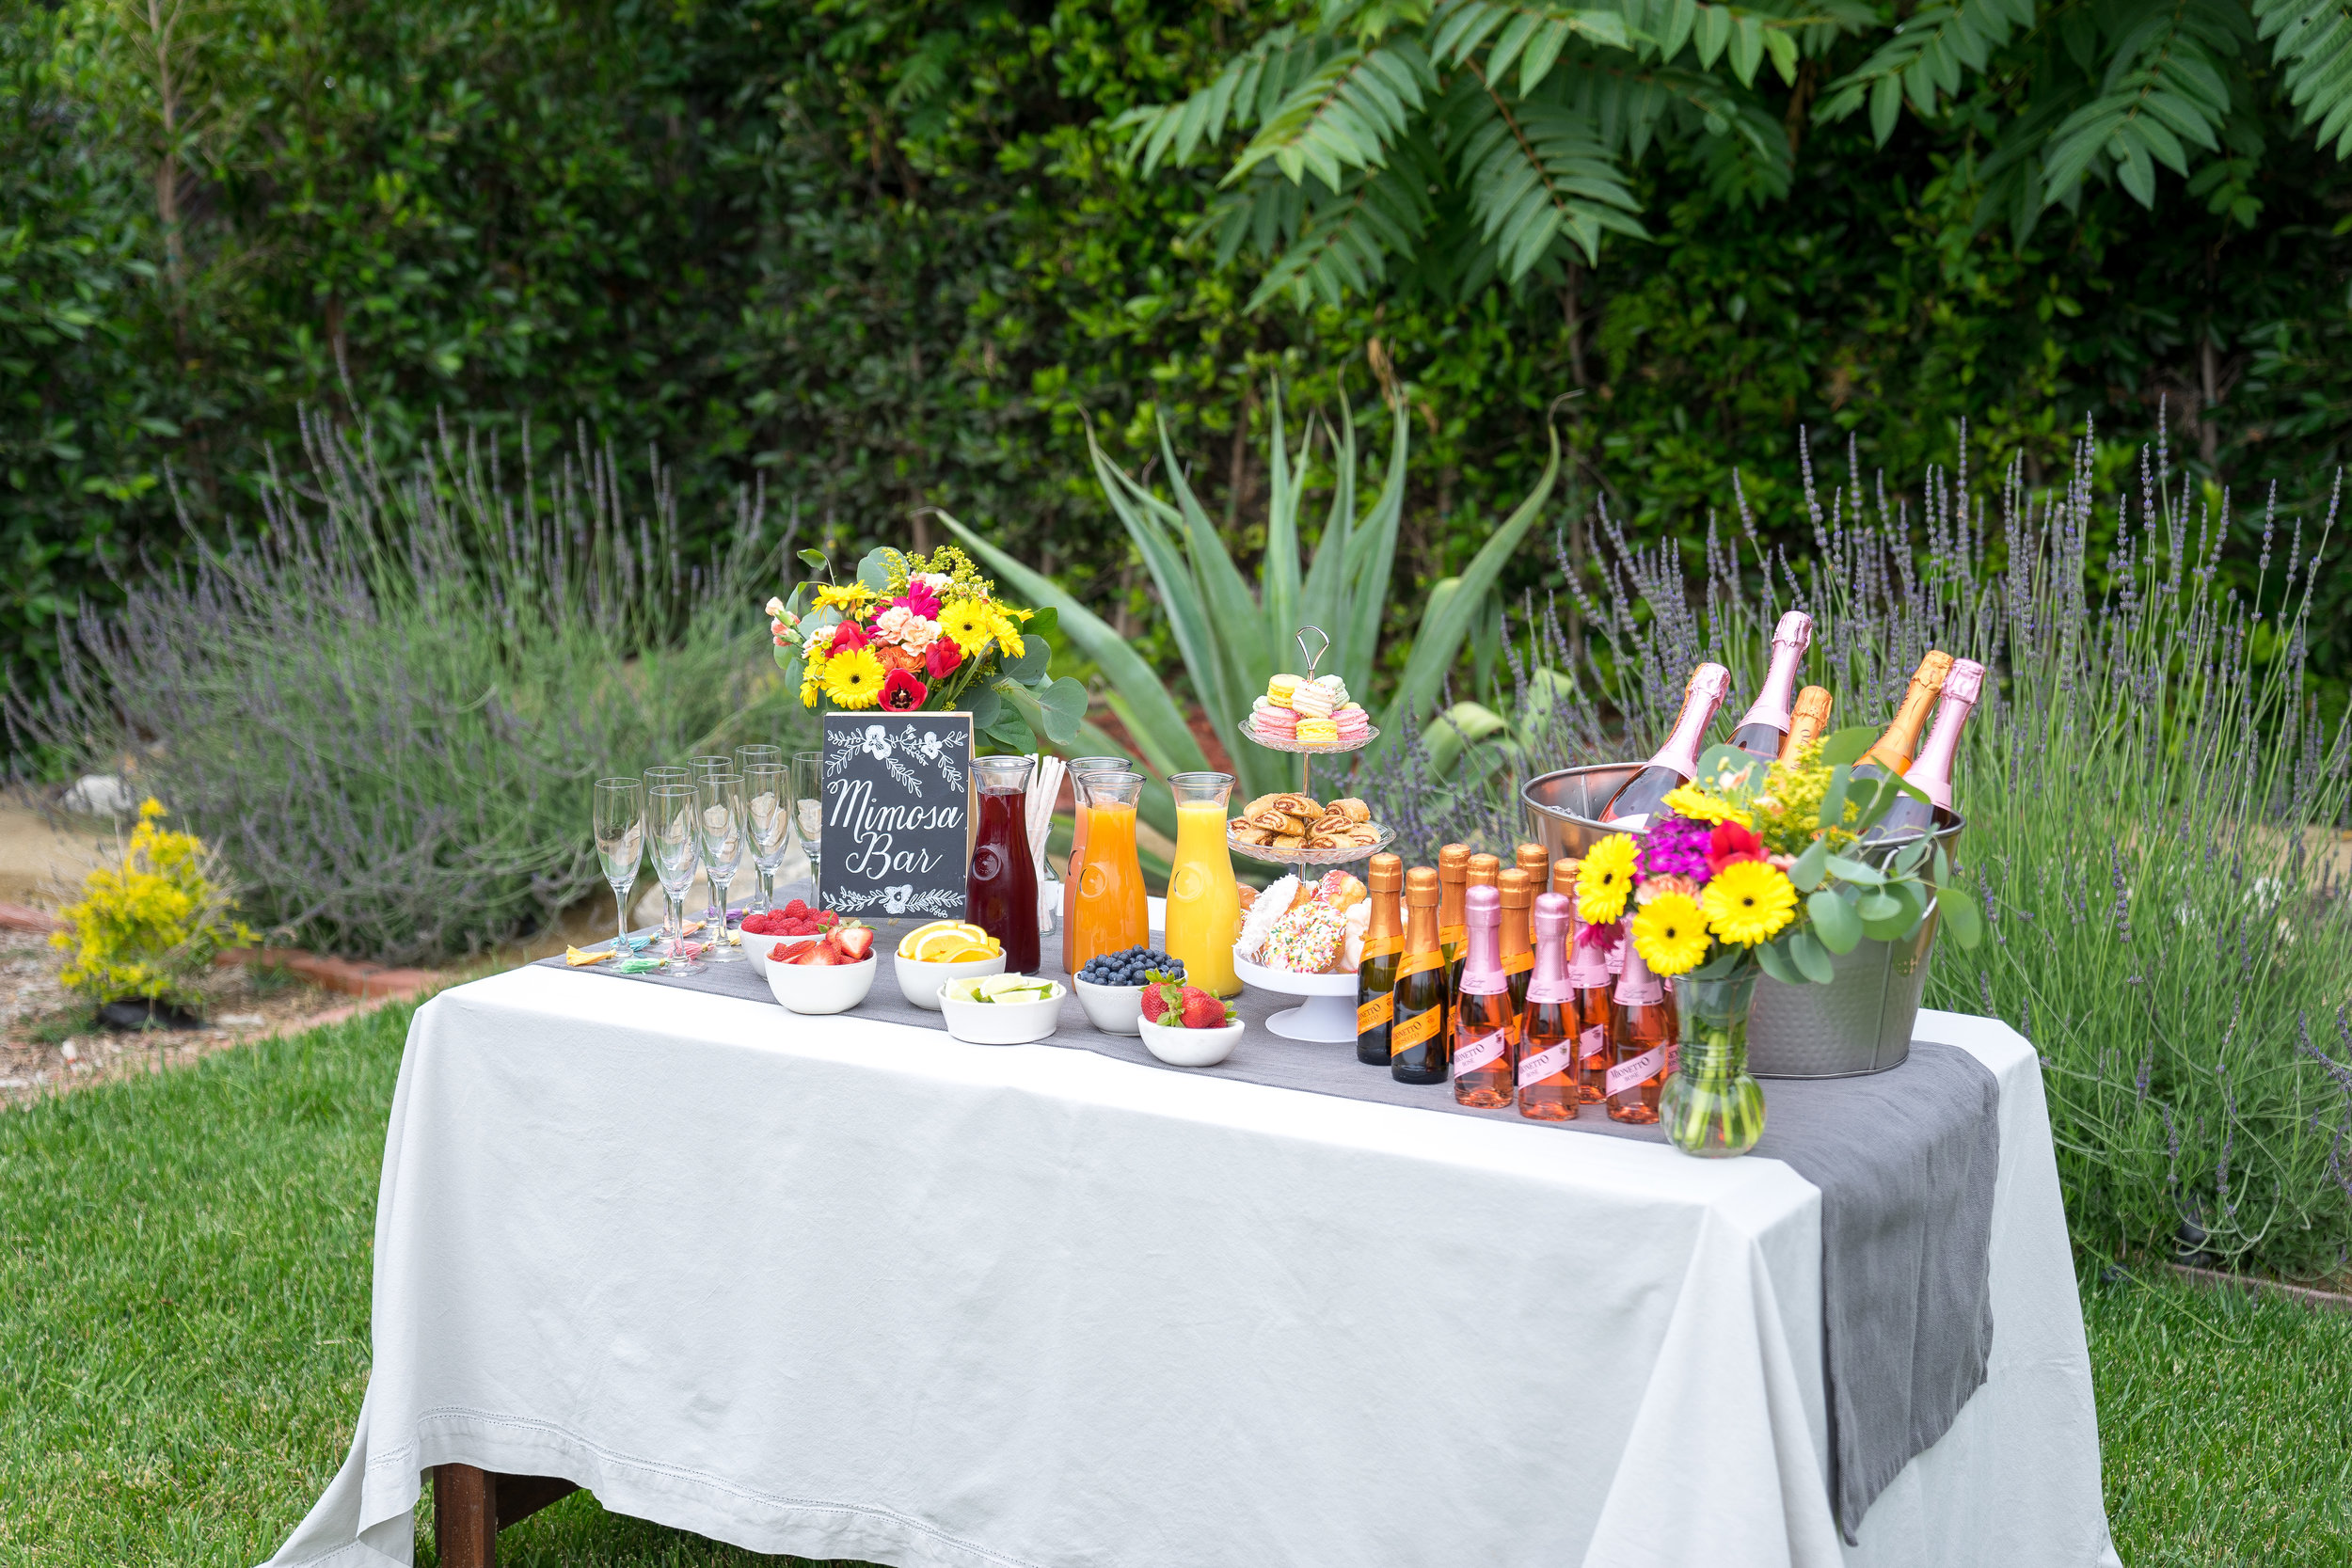 Build-Your-Own-Mimosa Bar Party, featuring Mionetto Prosecco - Brunchographers